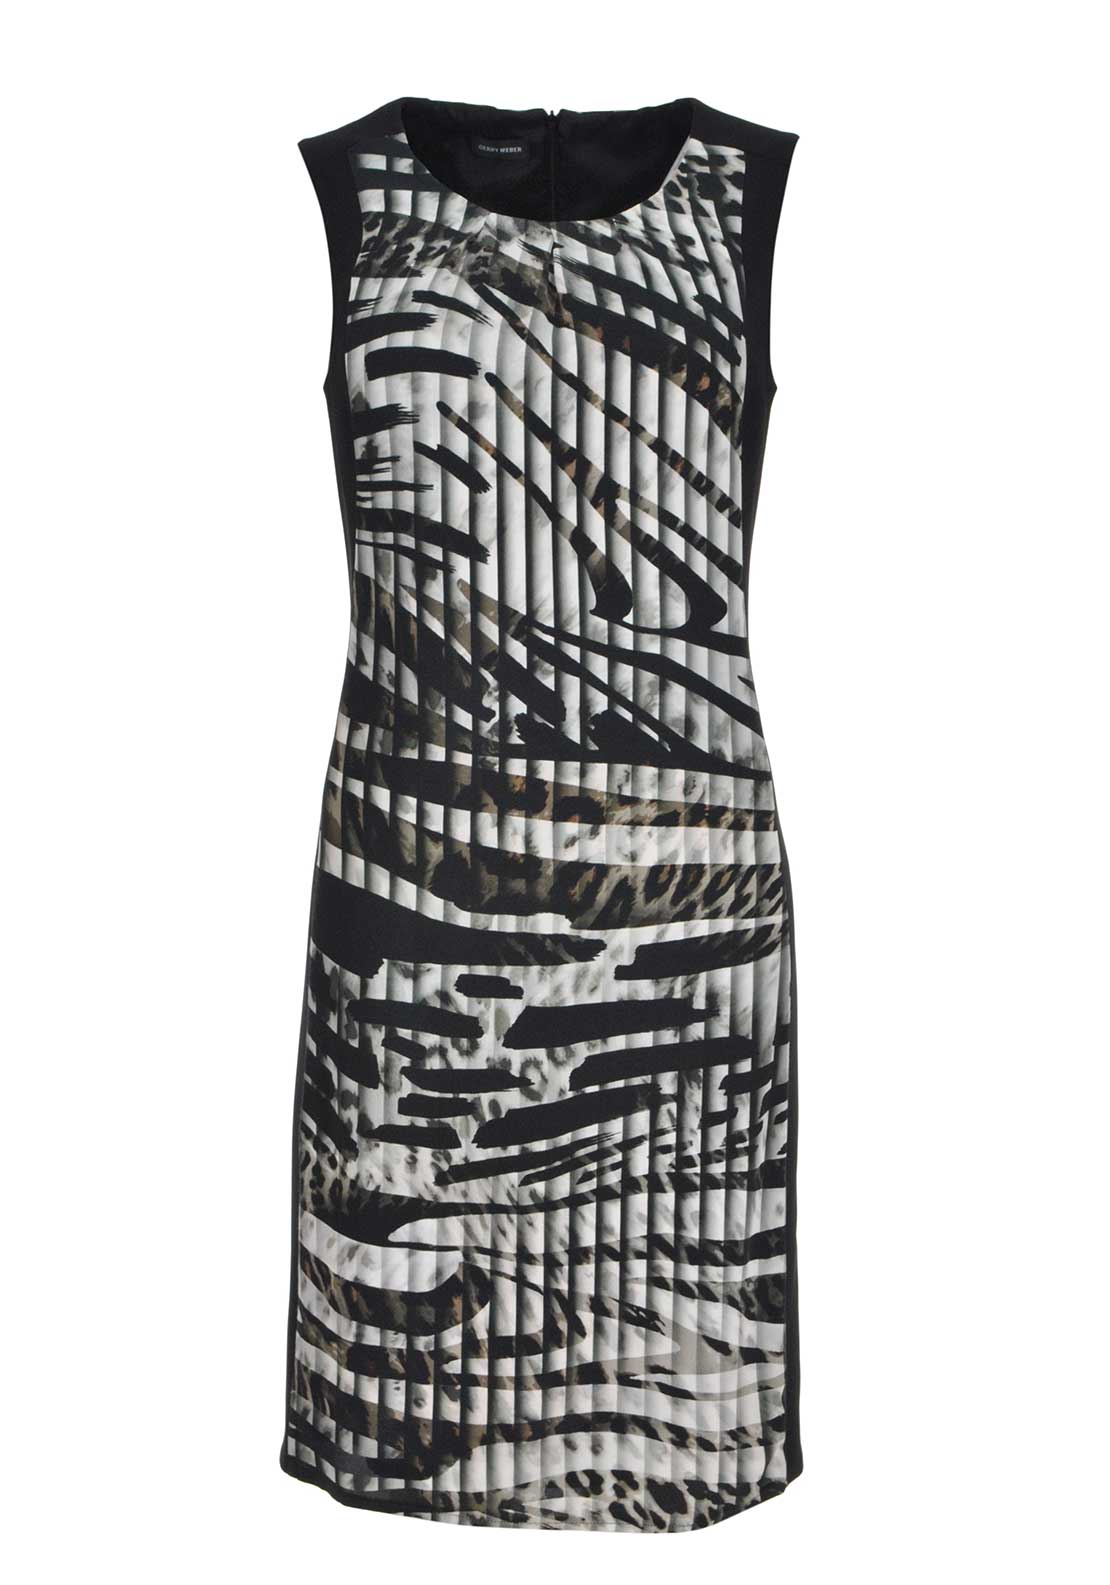 Gerry Weber Sleeveless Print Dress, Multi-Coloured